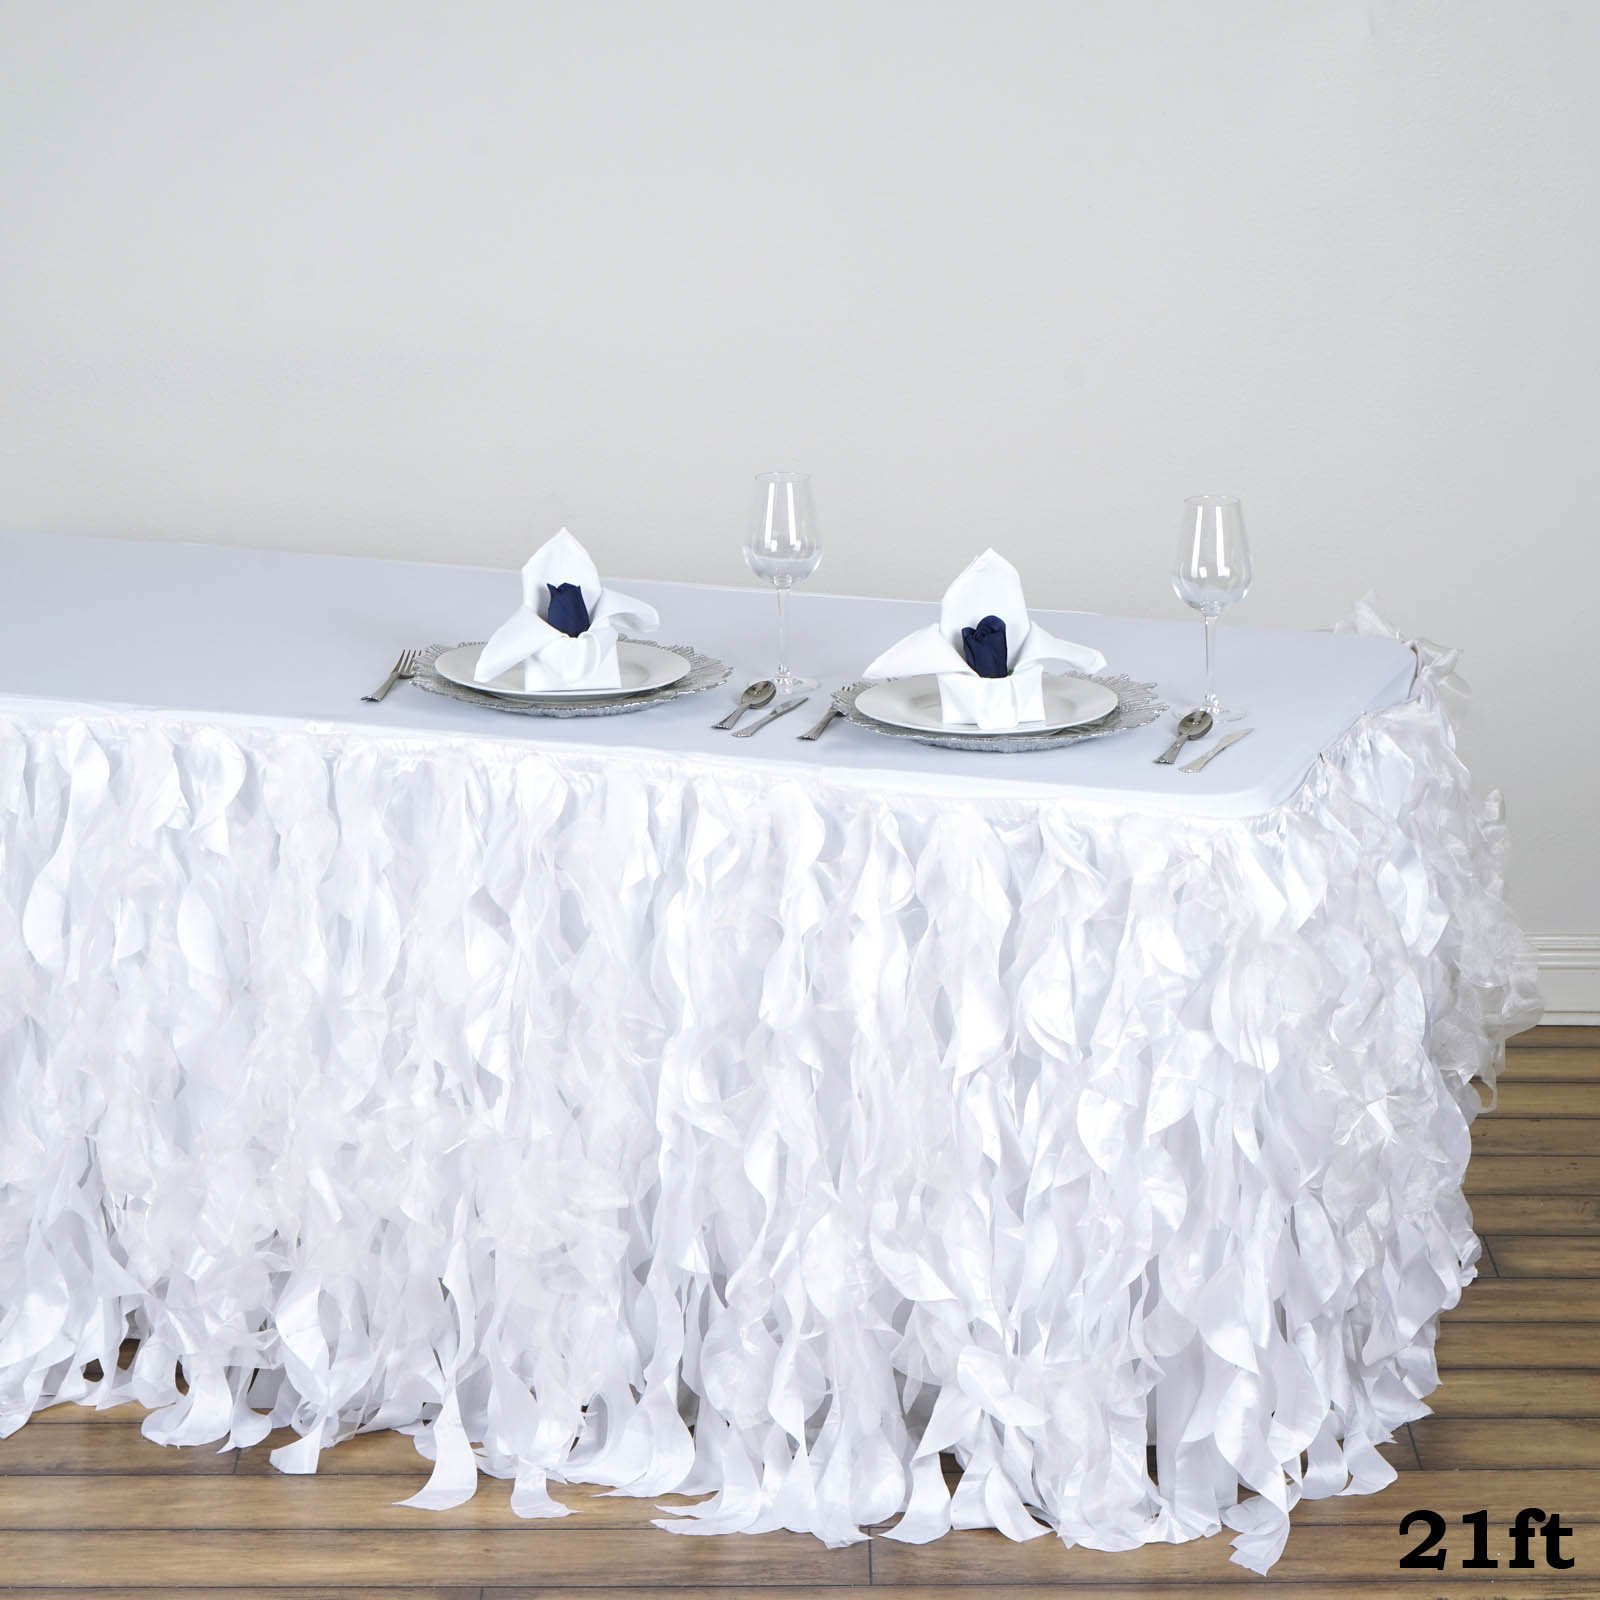 Tableclothsfactory 21ft Enchanting Curly Willow Taffeta Table Skirt - White